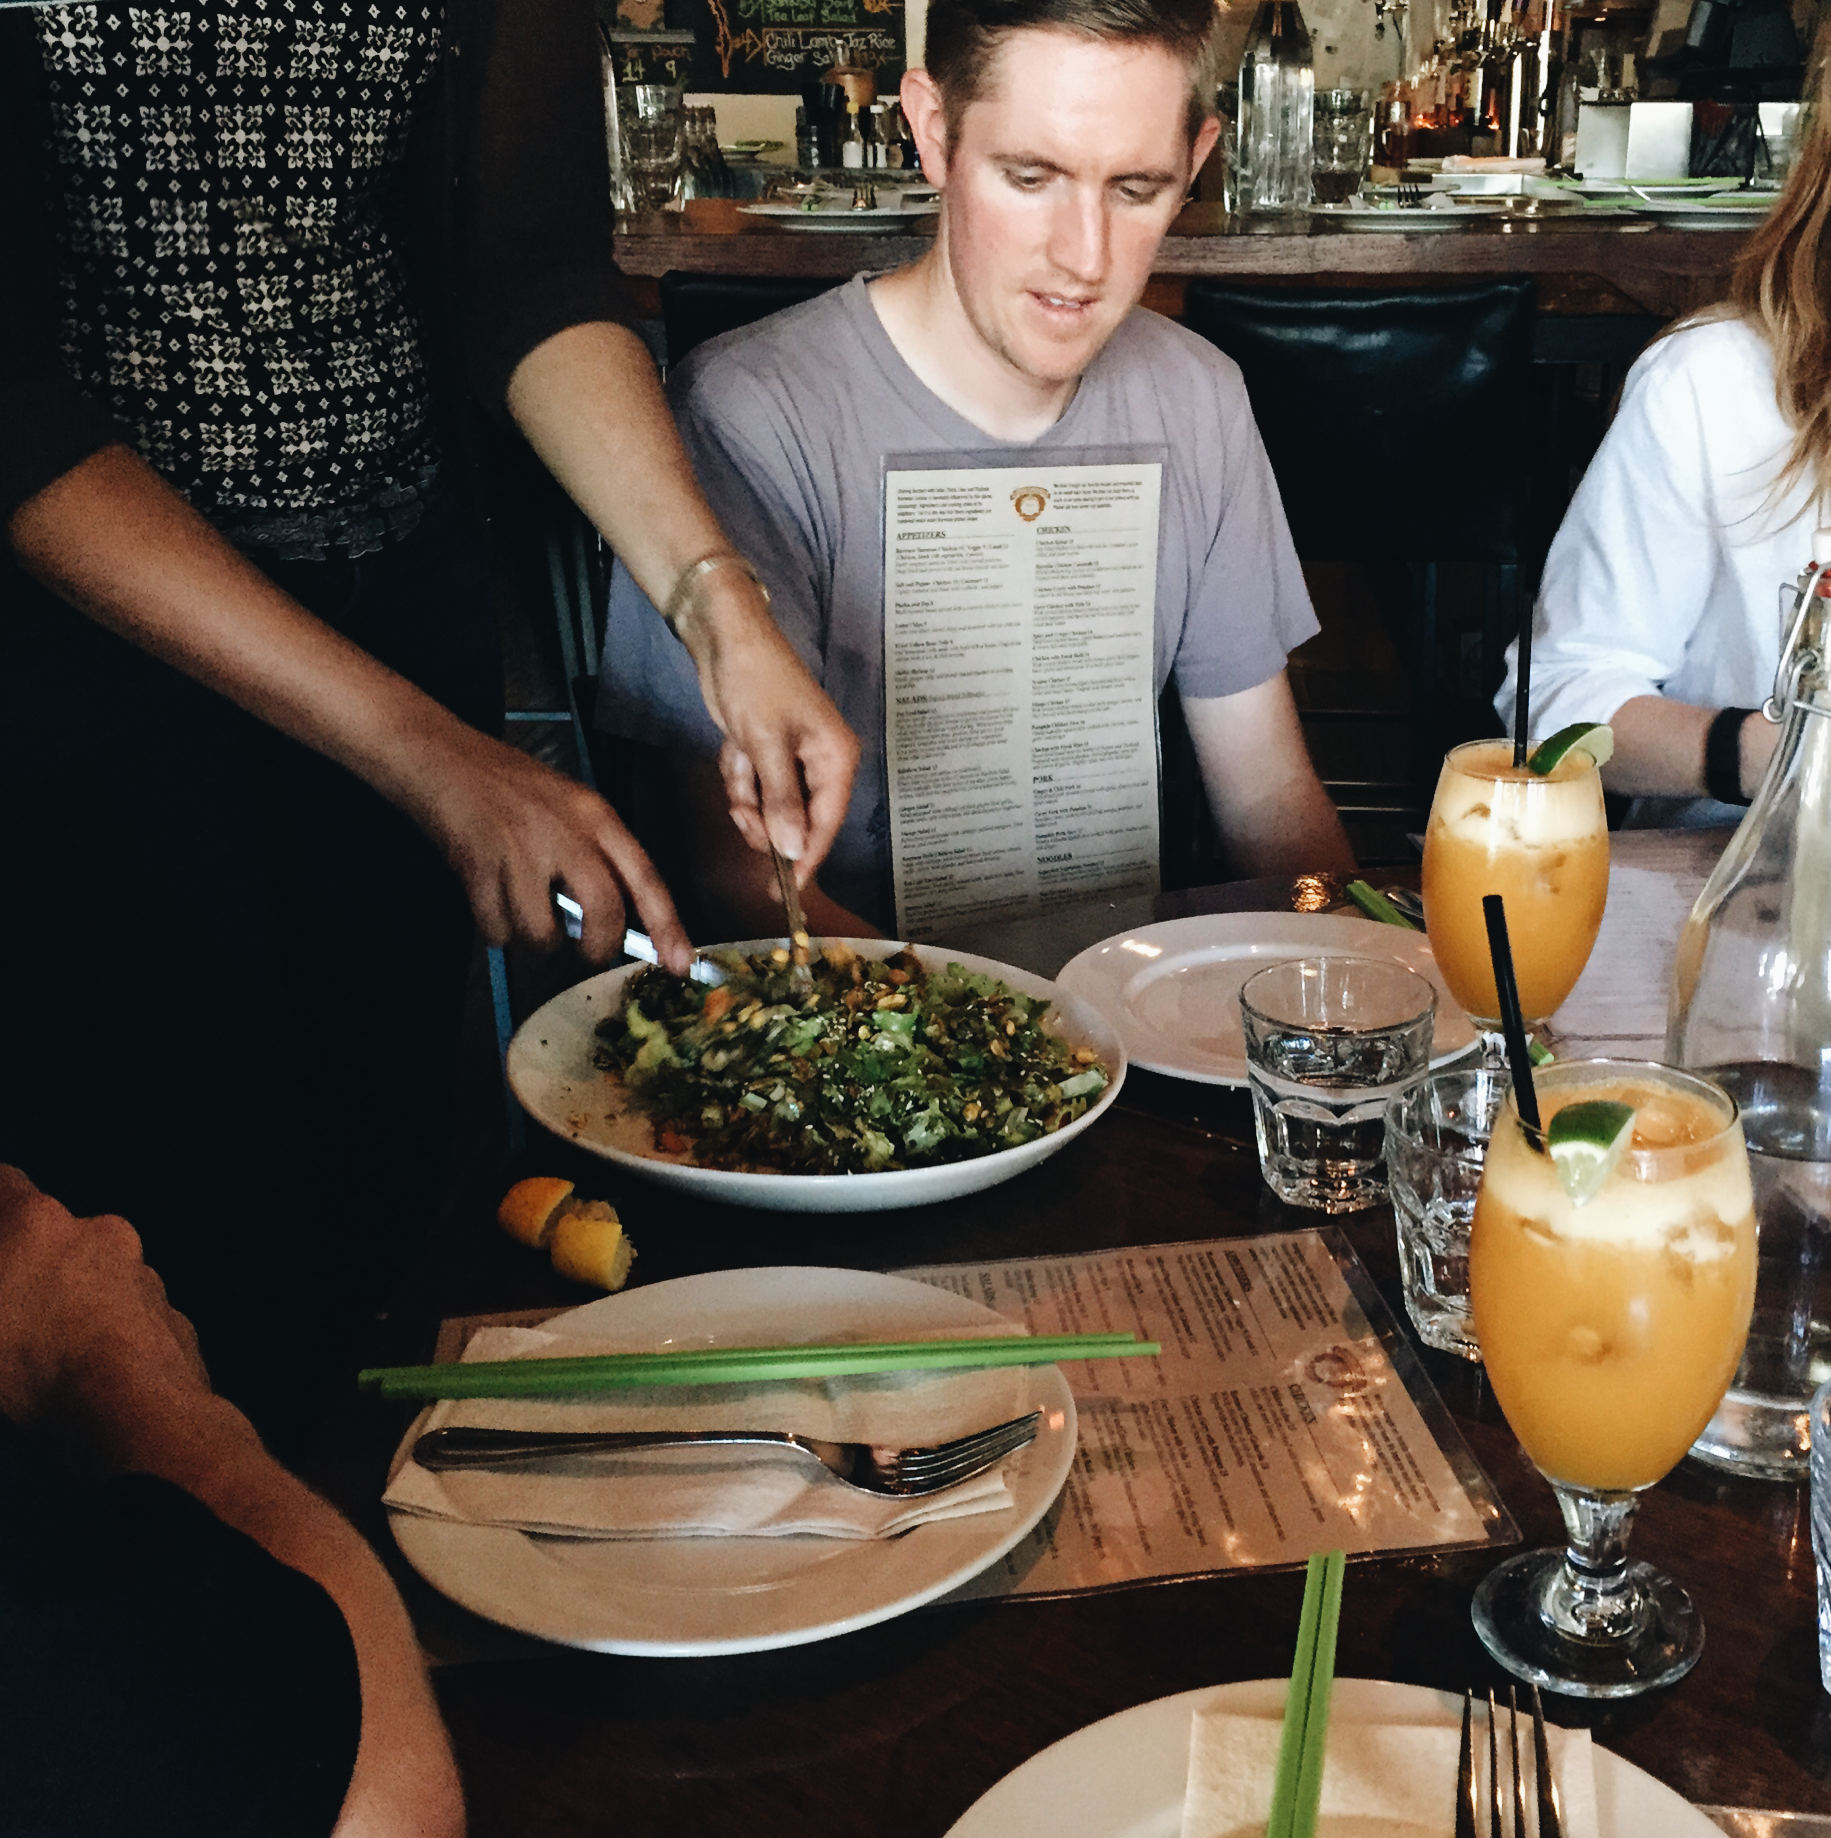 The tea leaf salad is hand mixed tableside. Photo by Dana.